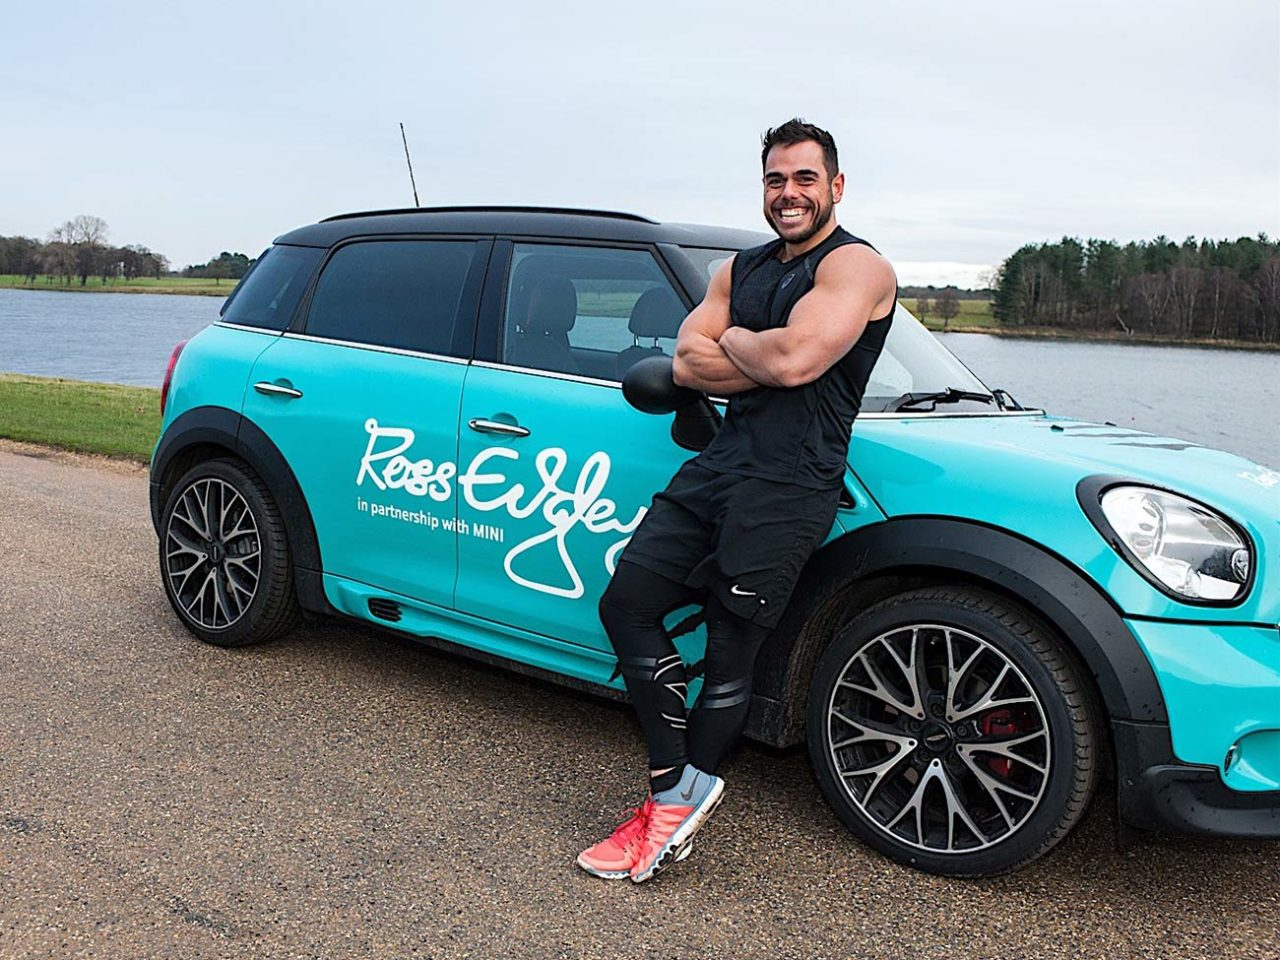 ross Edgley Worlds Fittest Marathon